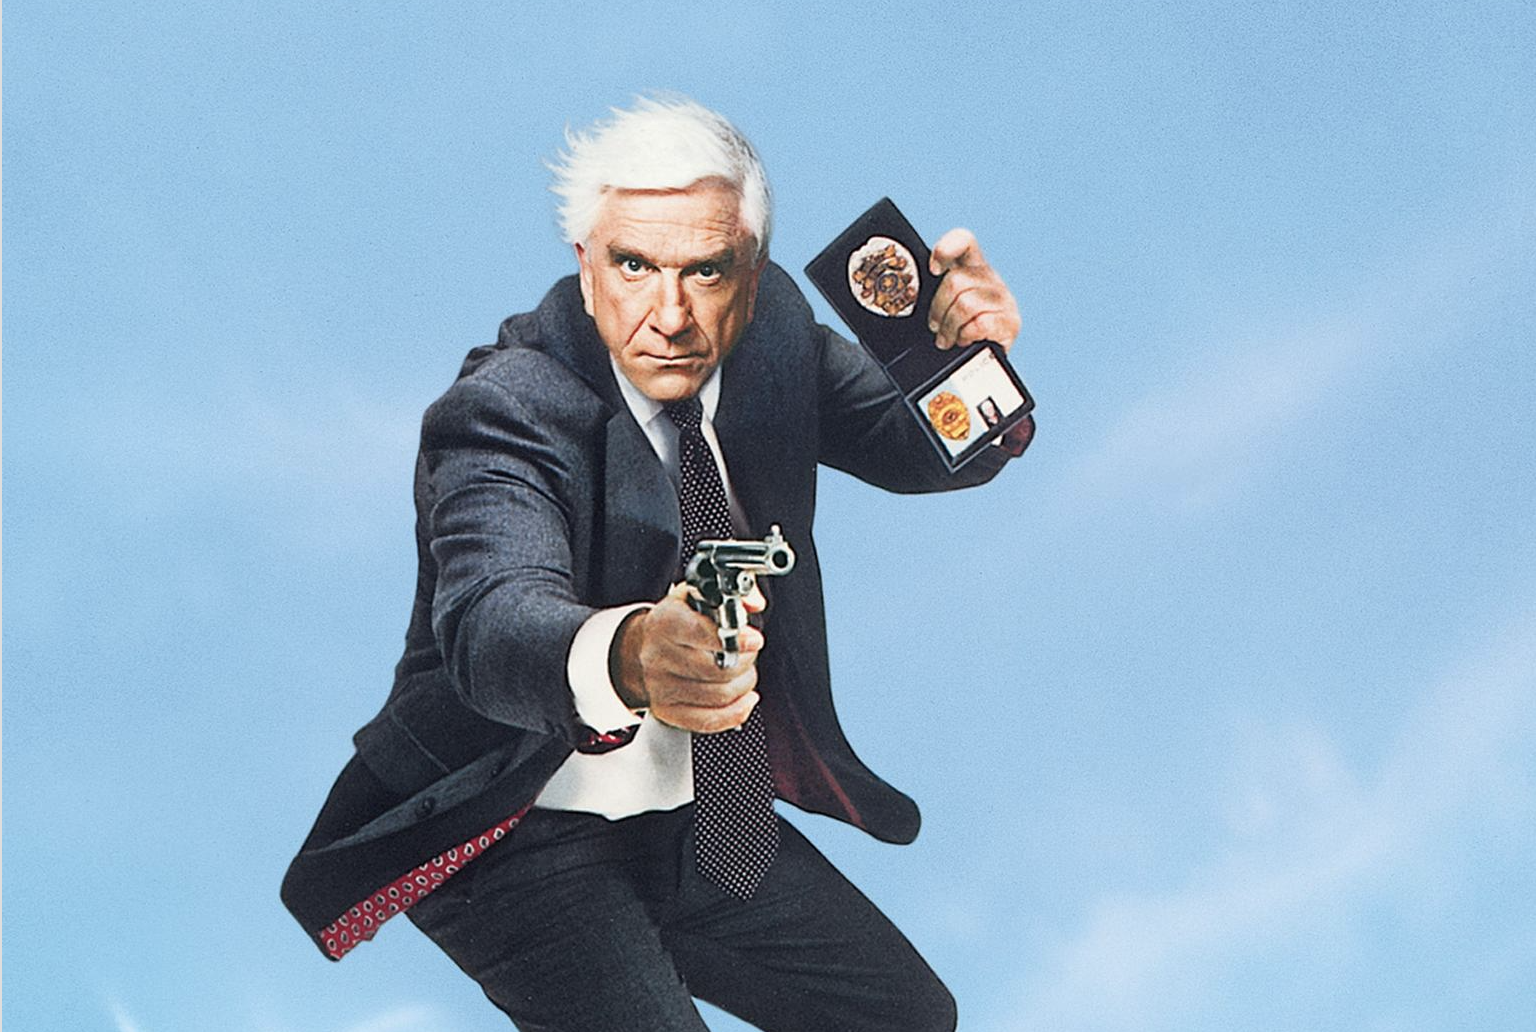 Still crazy after all these years - The Naked Gun: From